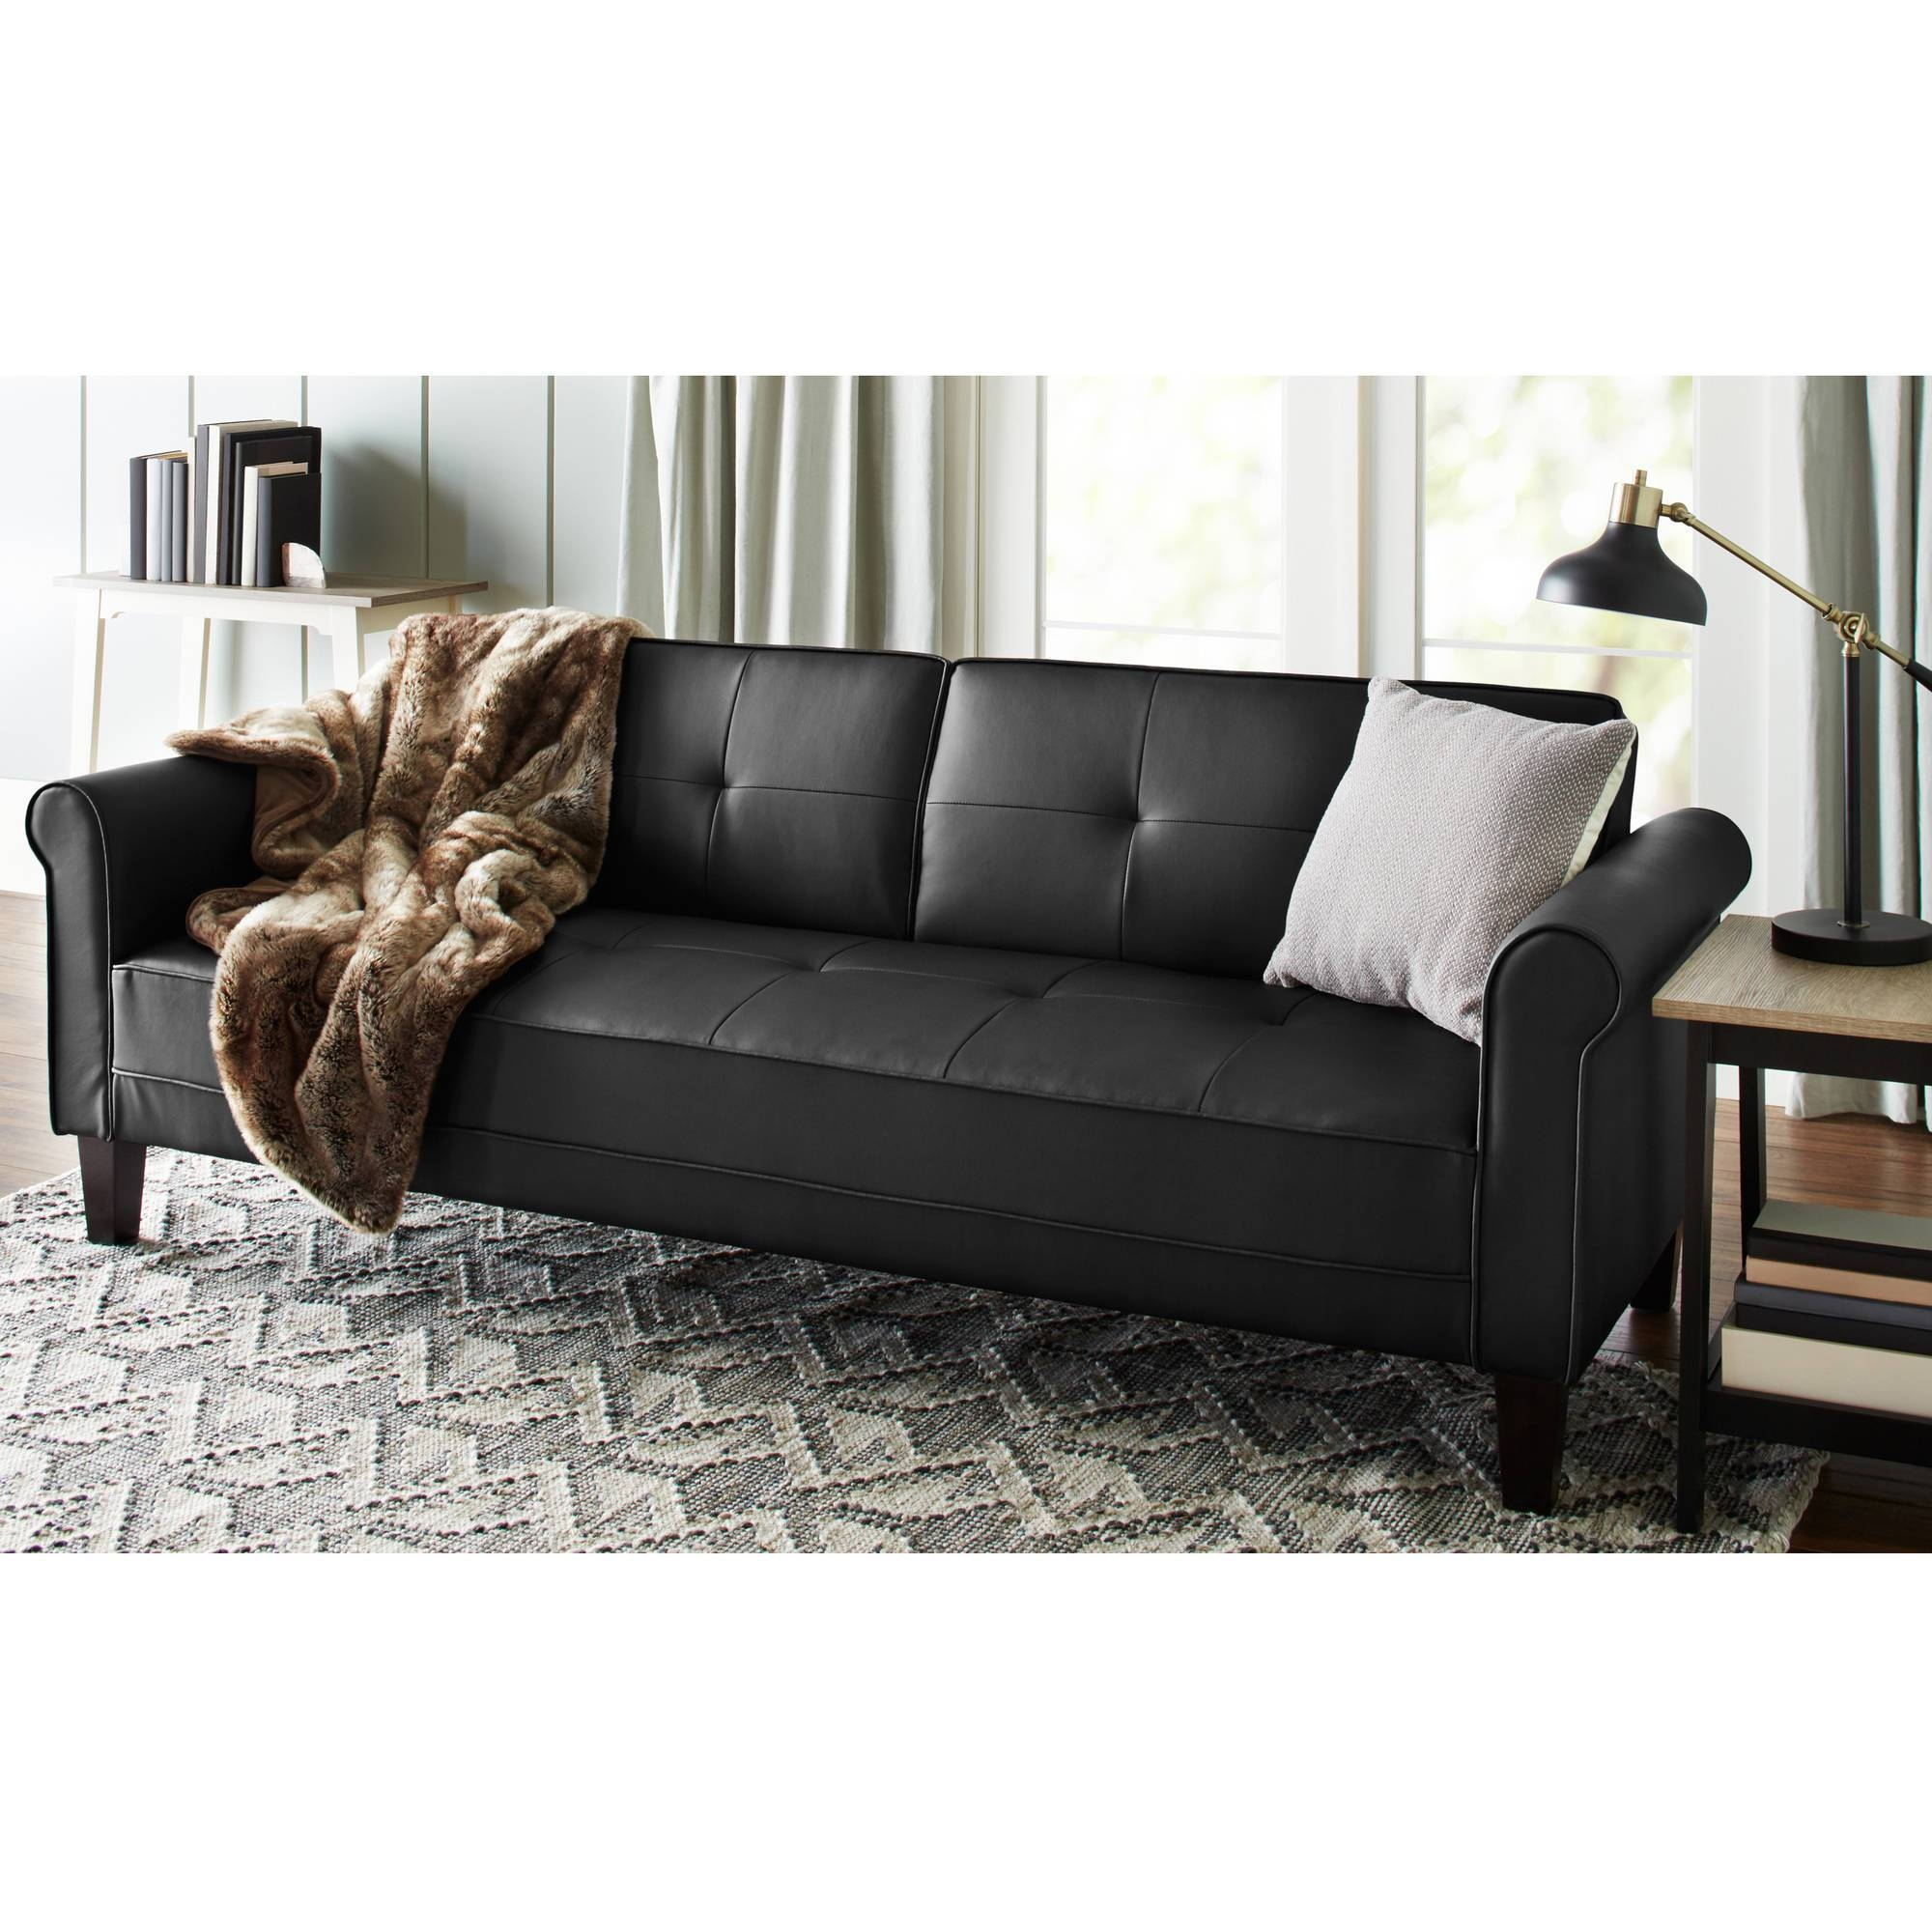 Norton Black Faux Leather Modern Living Room Sofa - Walmart in Wallmart Sofa (Image 23 of 25)